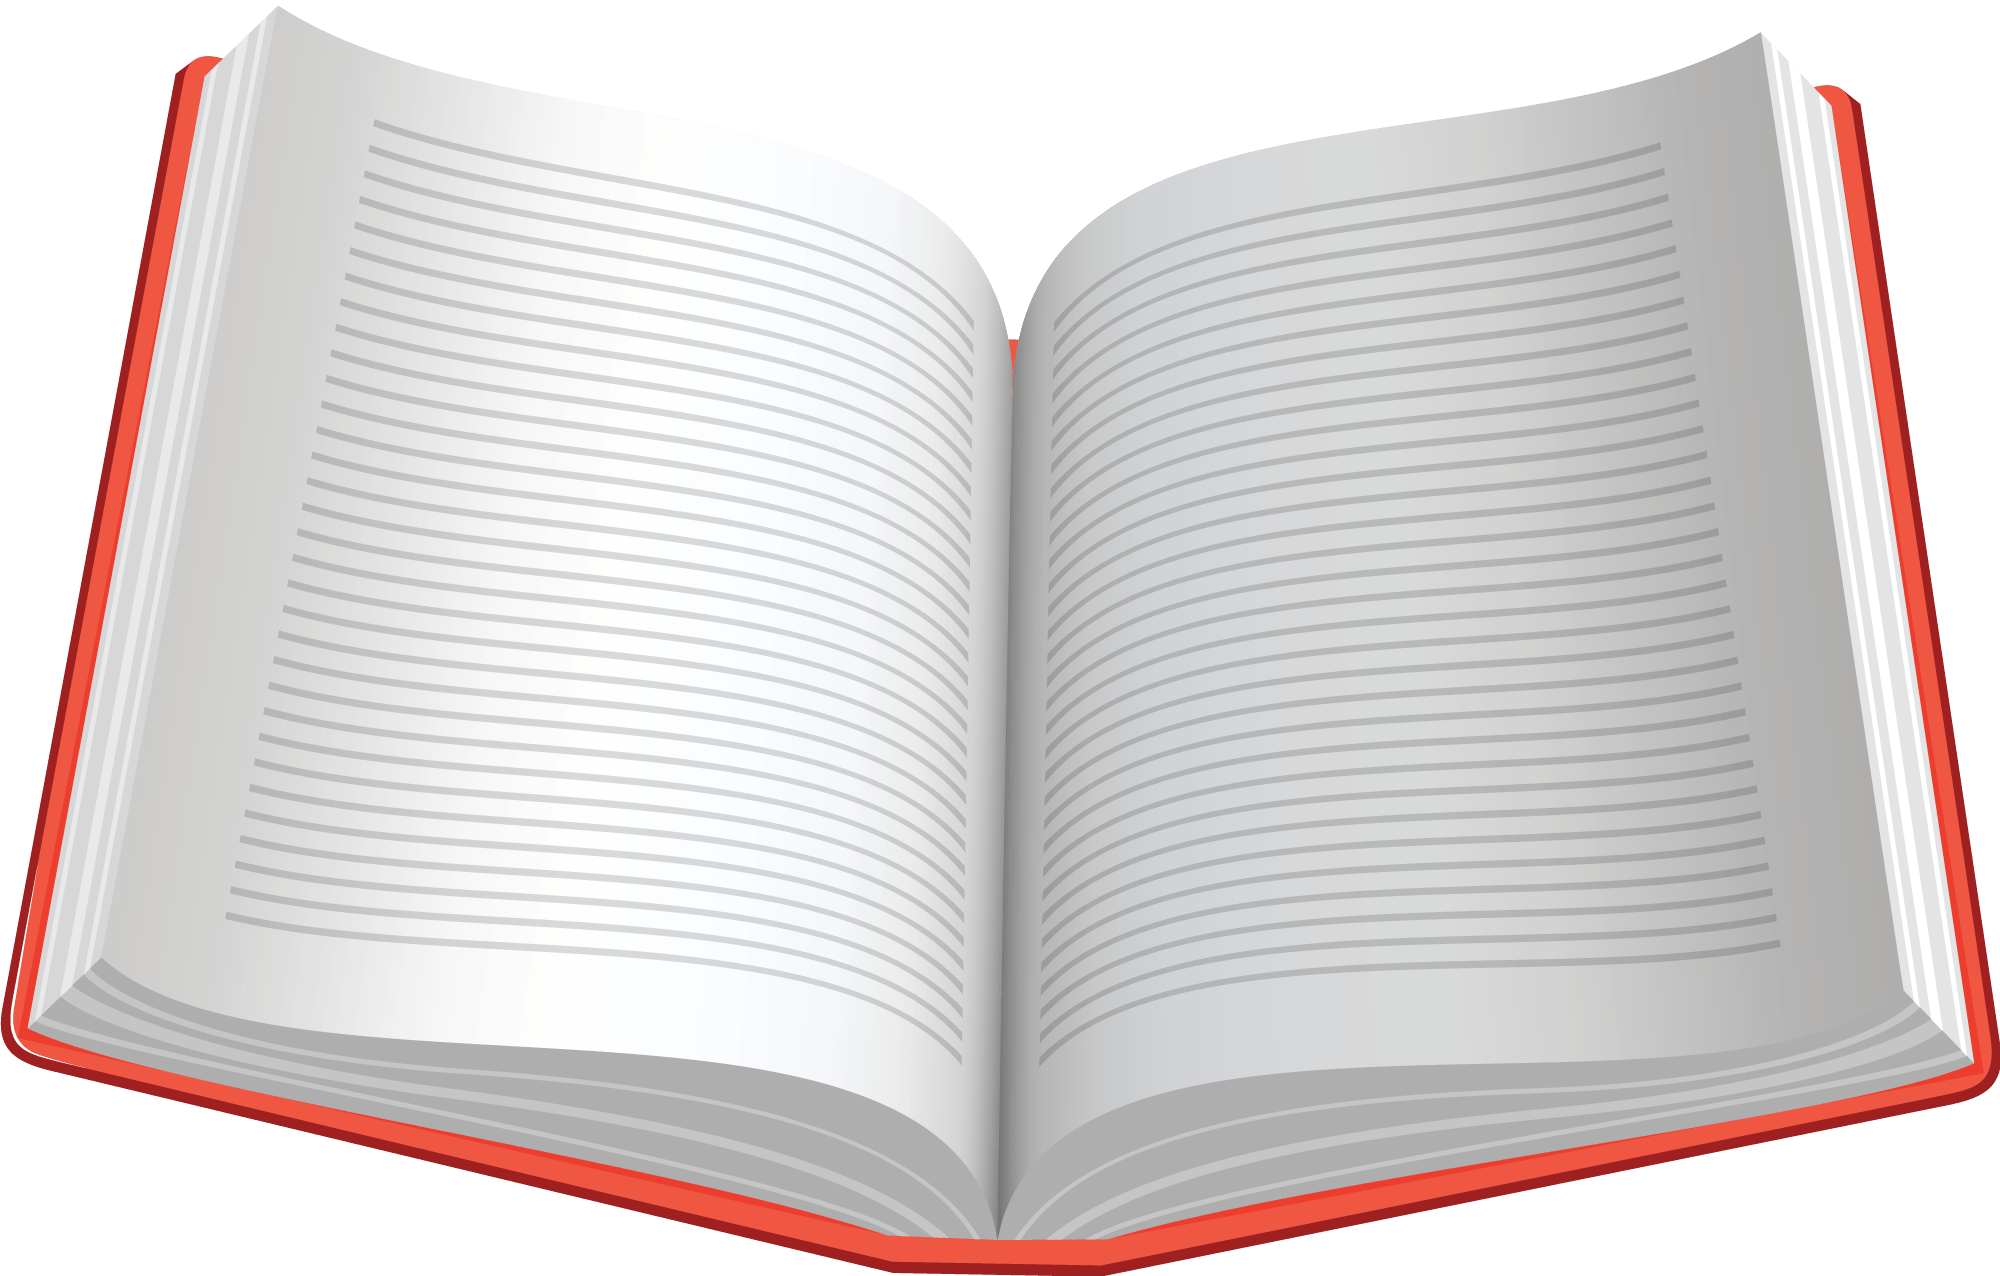 8 open book png image